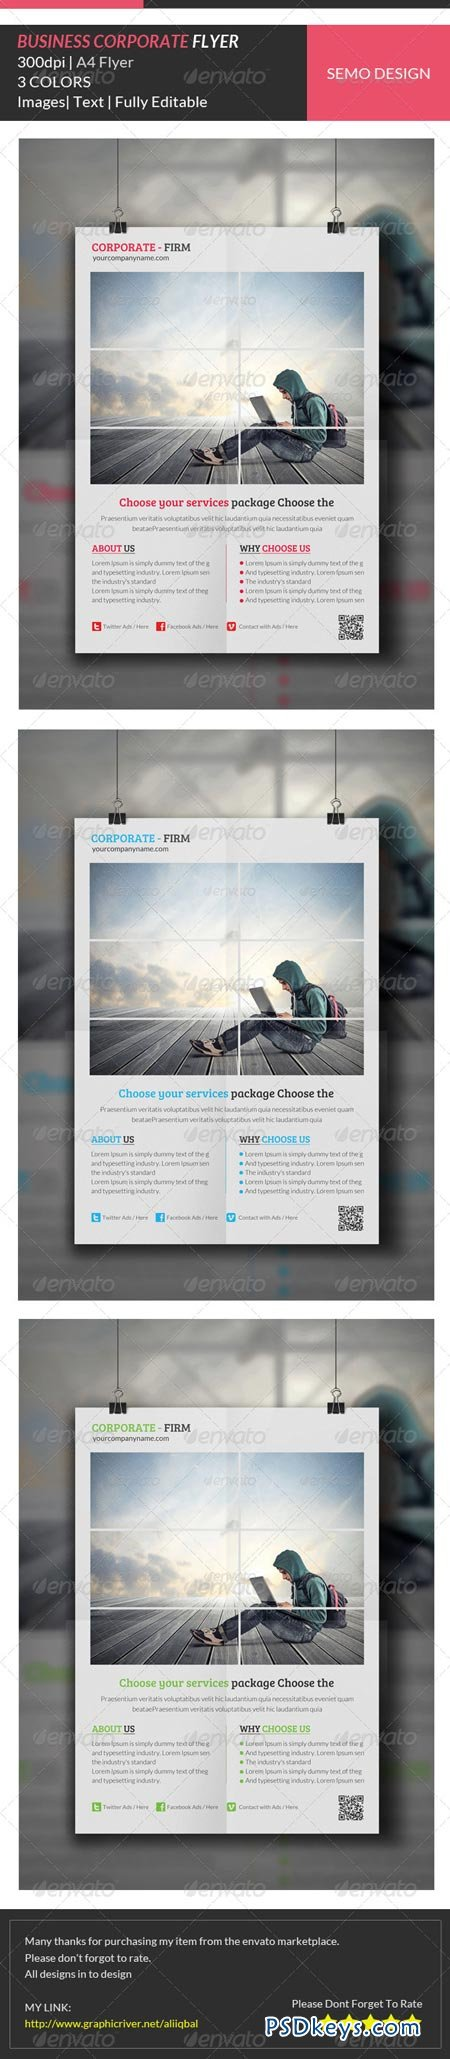 Business Corporate Flyer Template 6913578